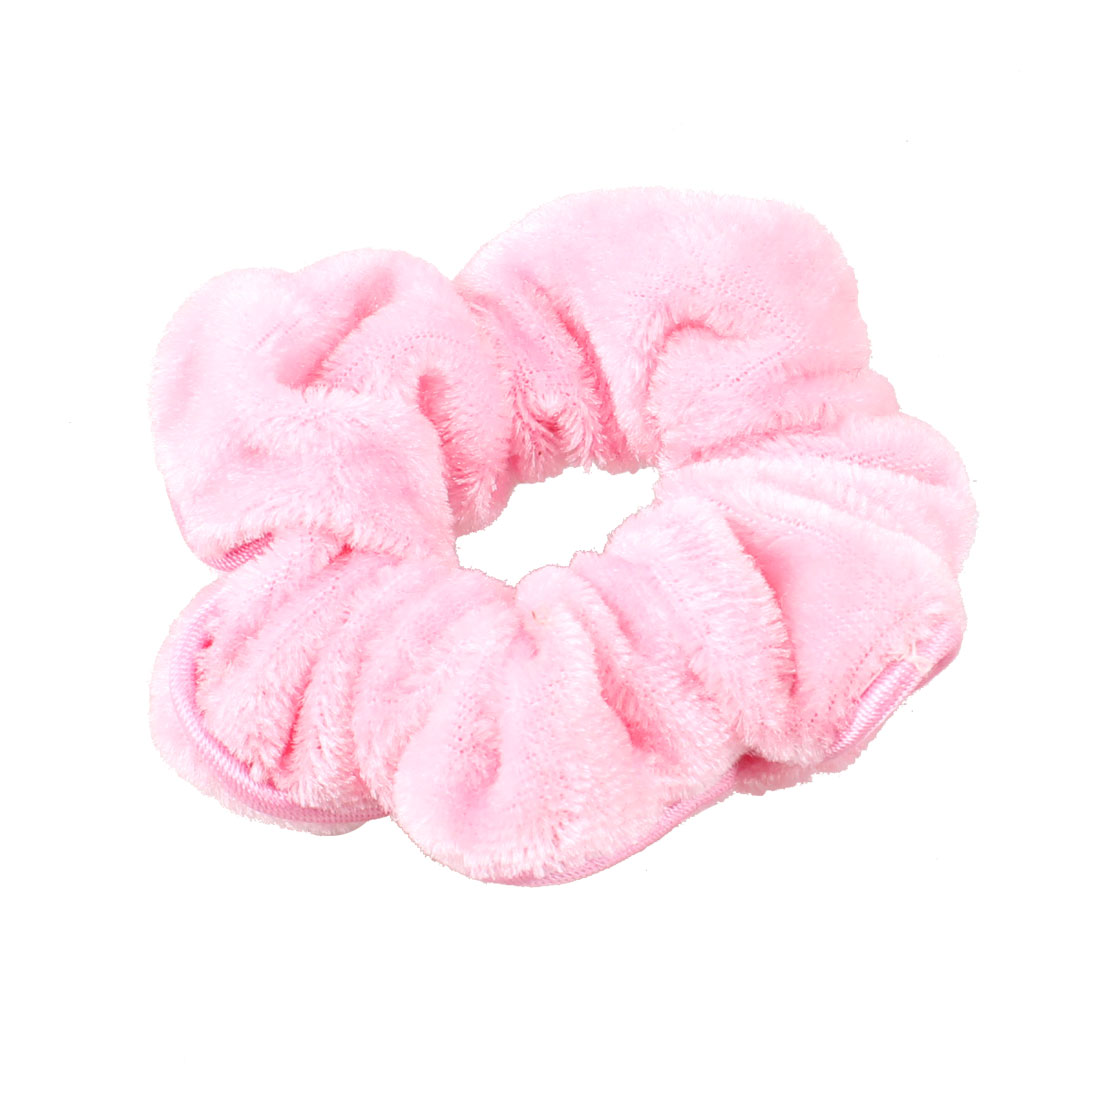 Headdress Pink Velvet Elastic Hair Holder Decoration for Women